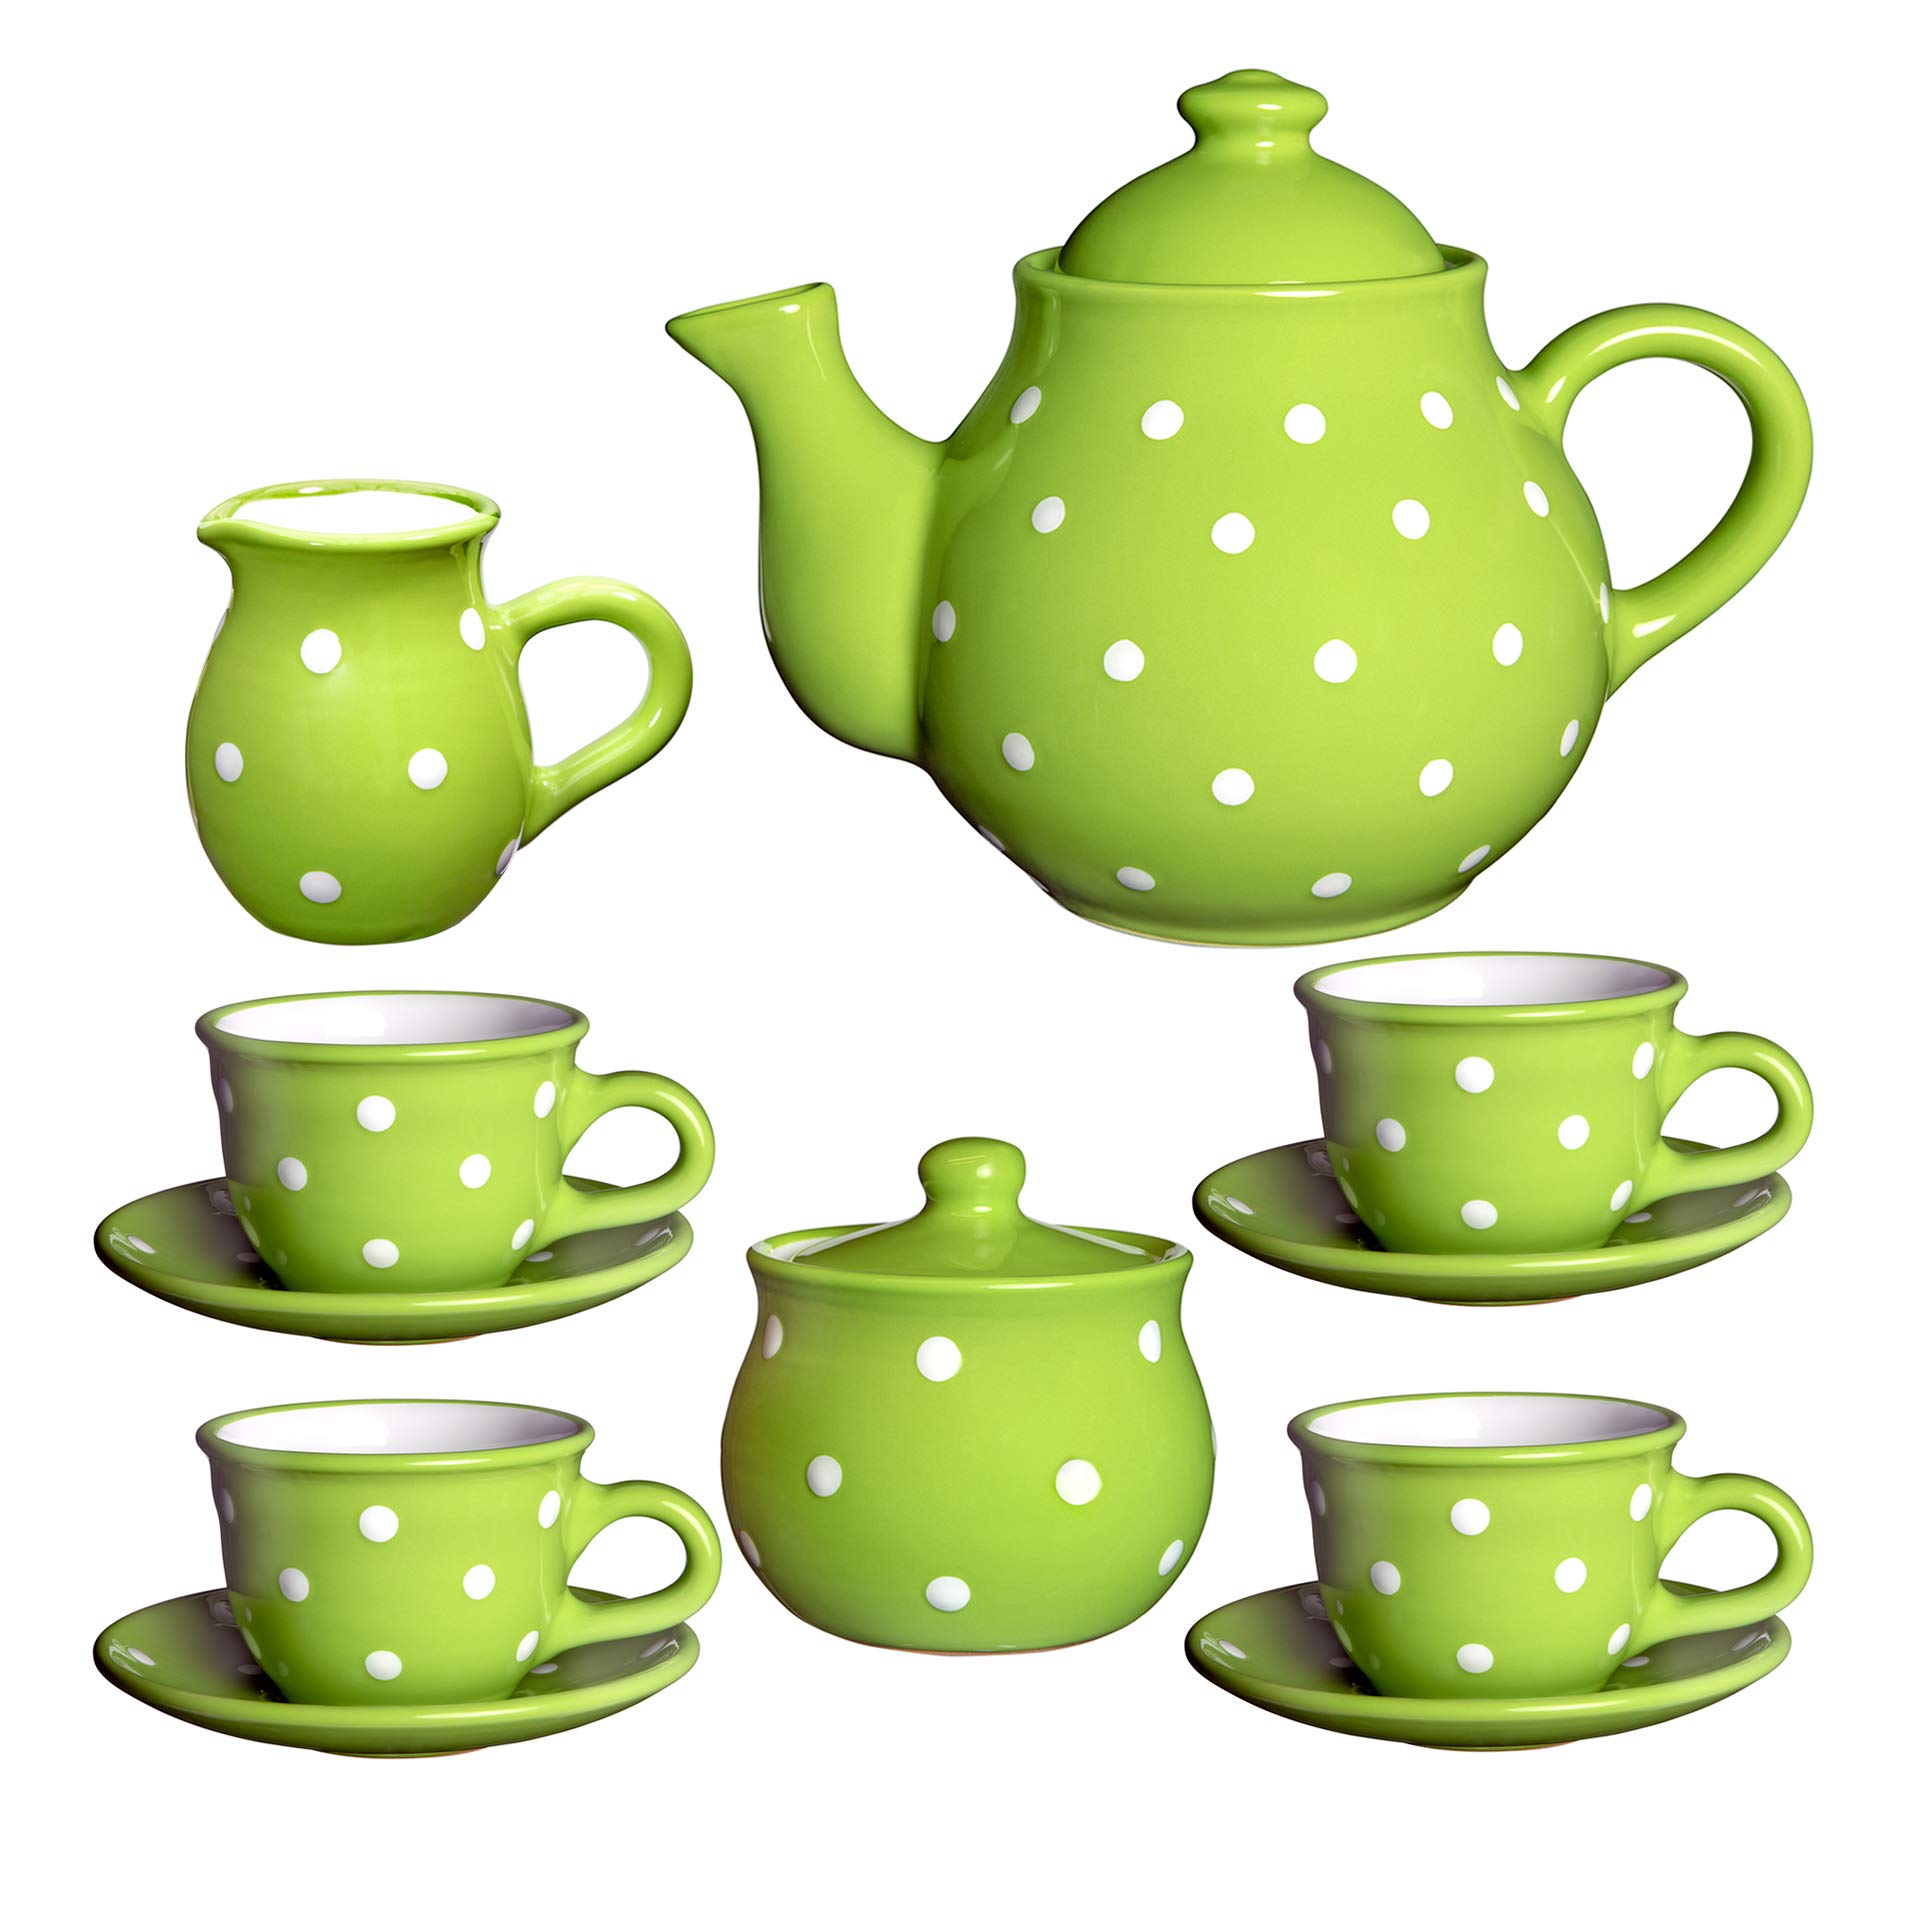 City to Cottage Handmade Green and White Polka Dot Ceramic Teapot Set, Large 1,7l/60oz/4-6 Cup Teapot, Milk Jug, Sugar Bowl, Four Cups and Saucers Tea Set, Pottery Housewarming Gift for Tea Lovers